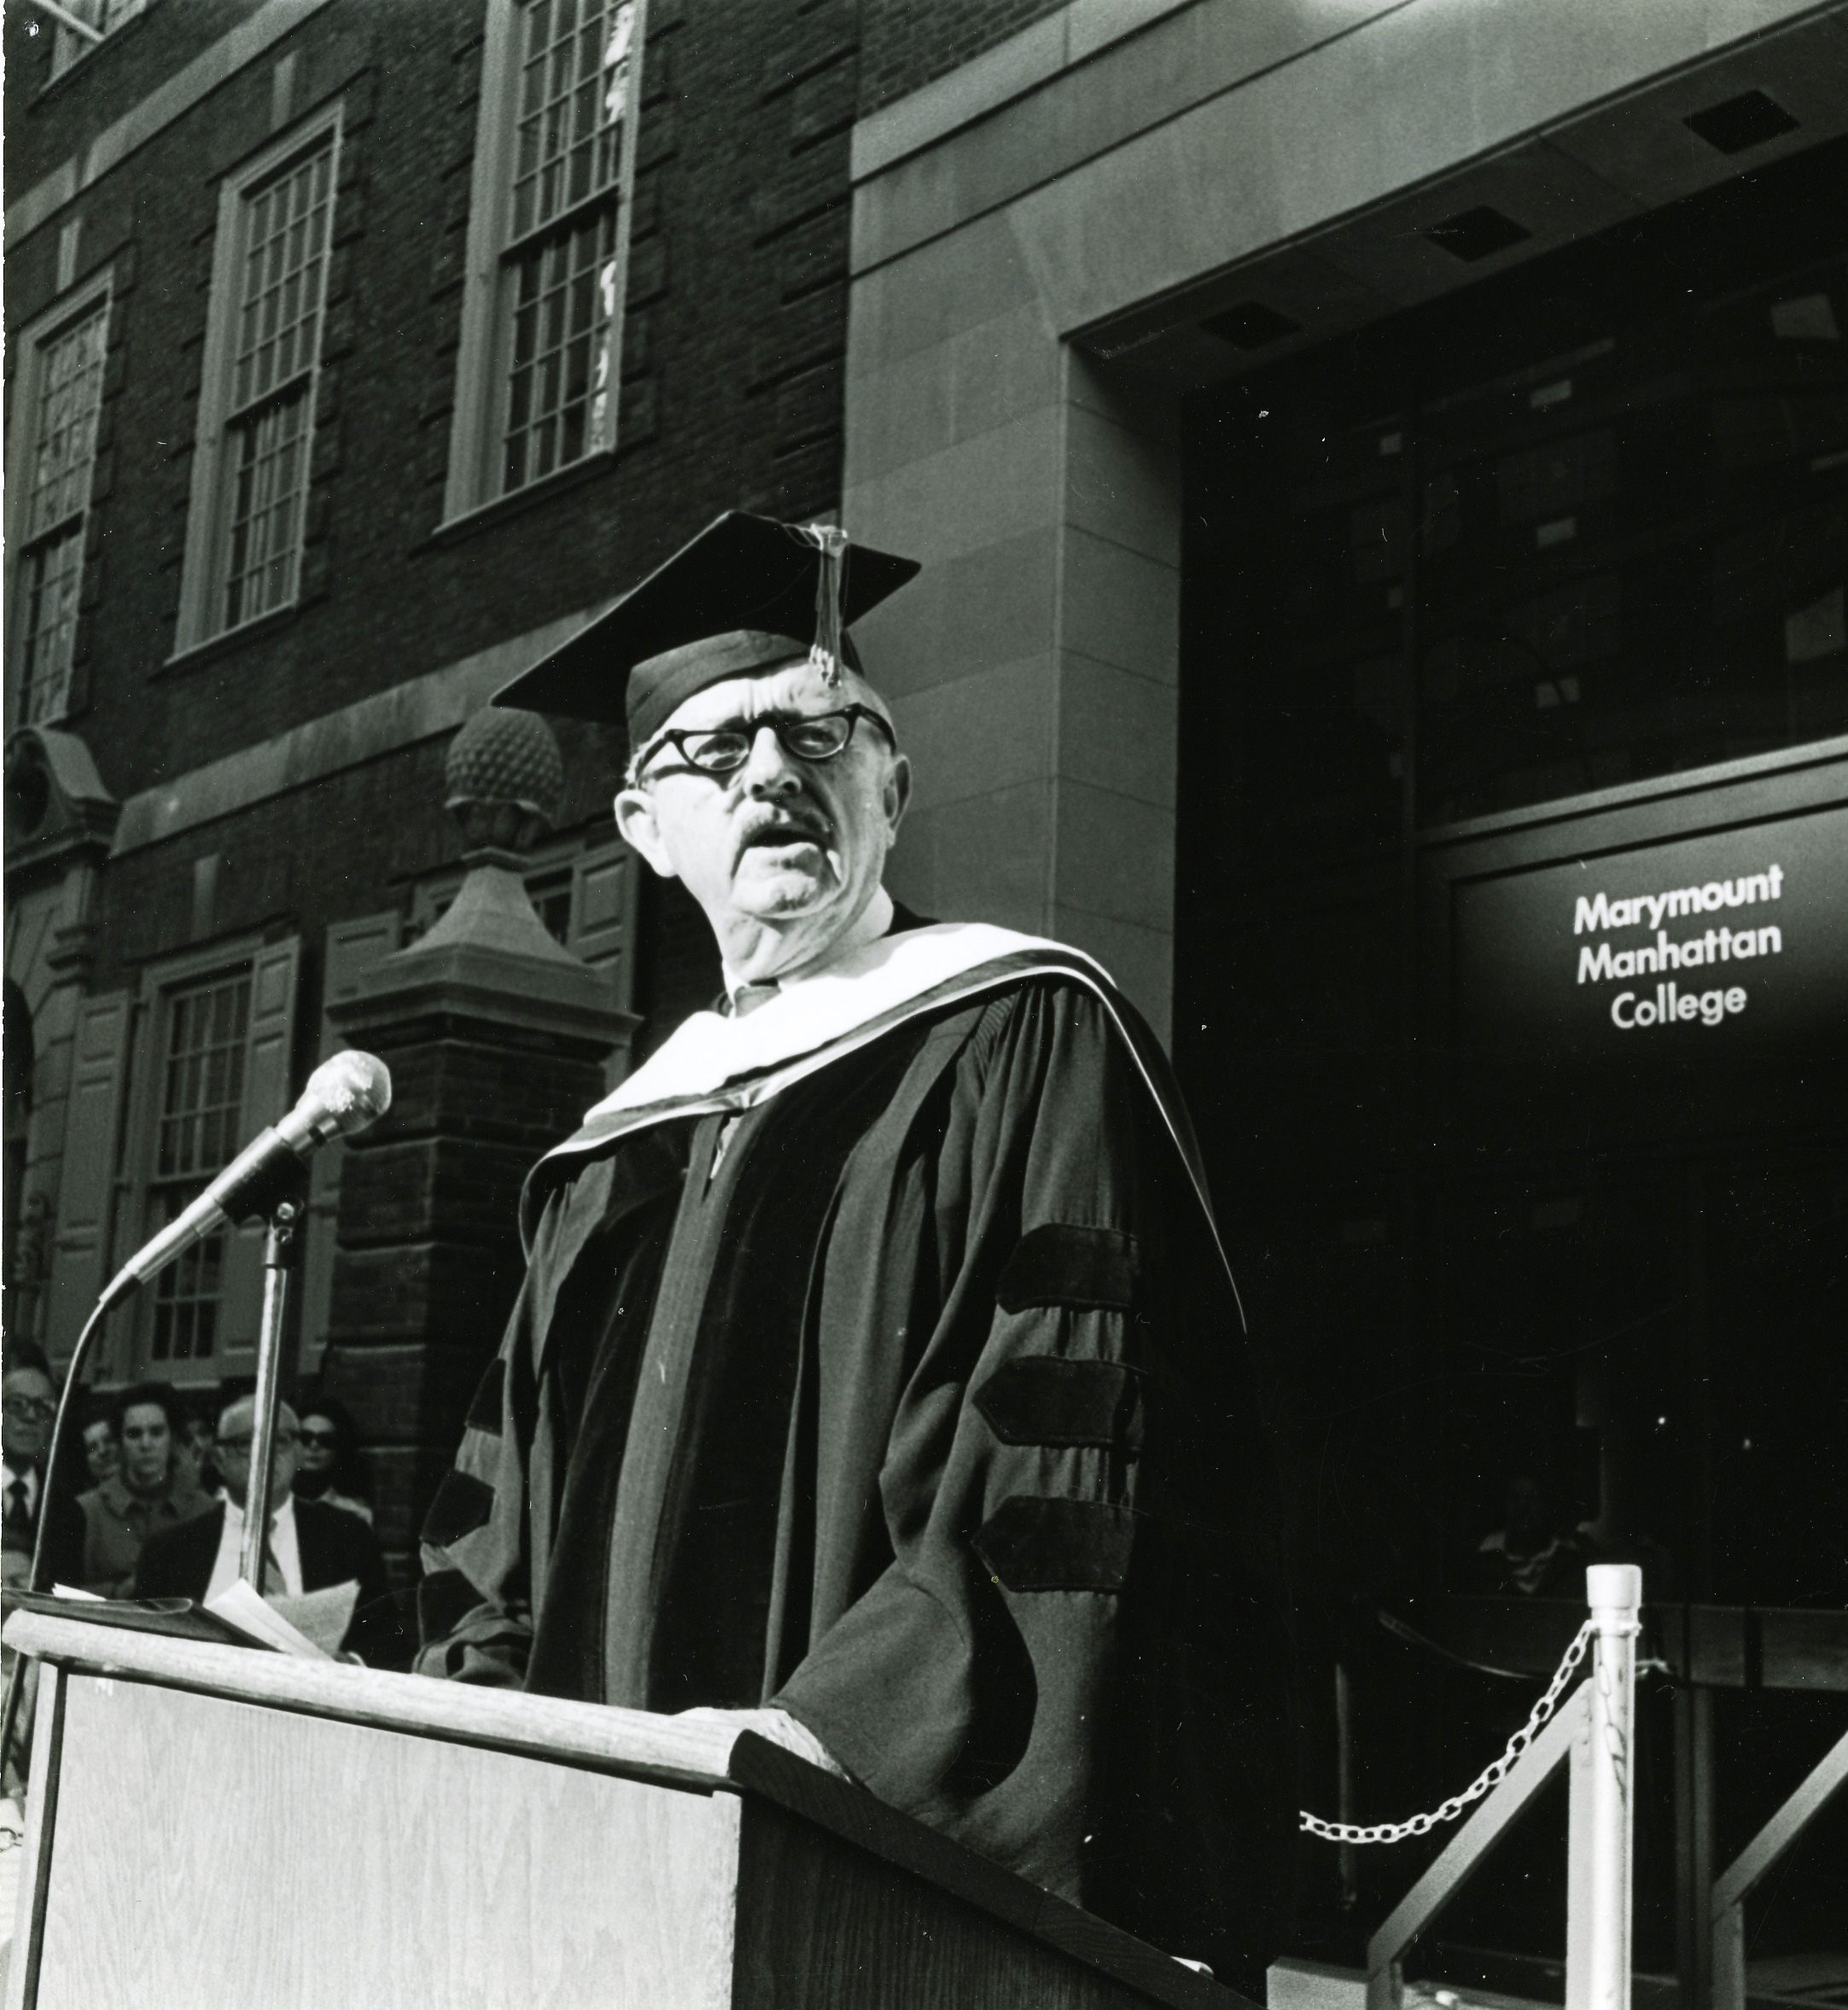 Joseph C. Nugent, Sr., speaking at the dedication of the building named for him.